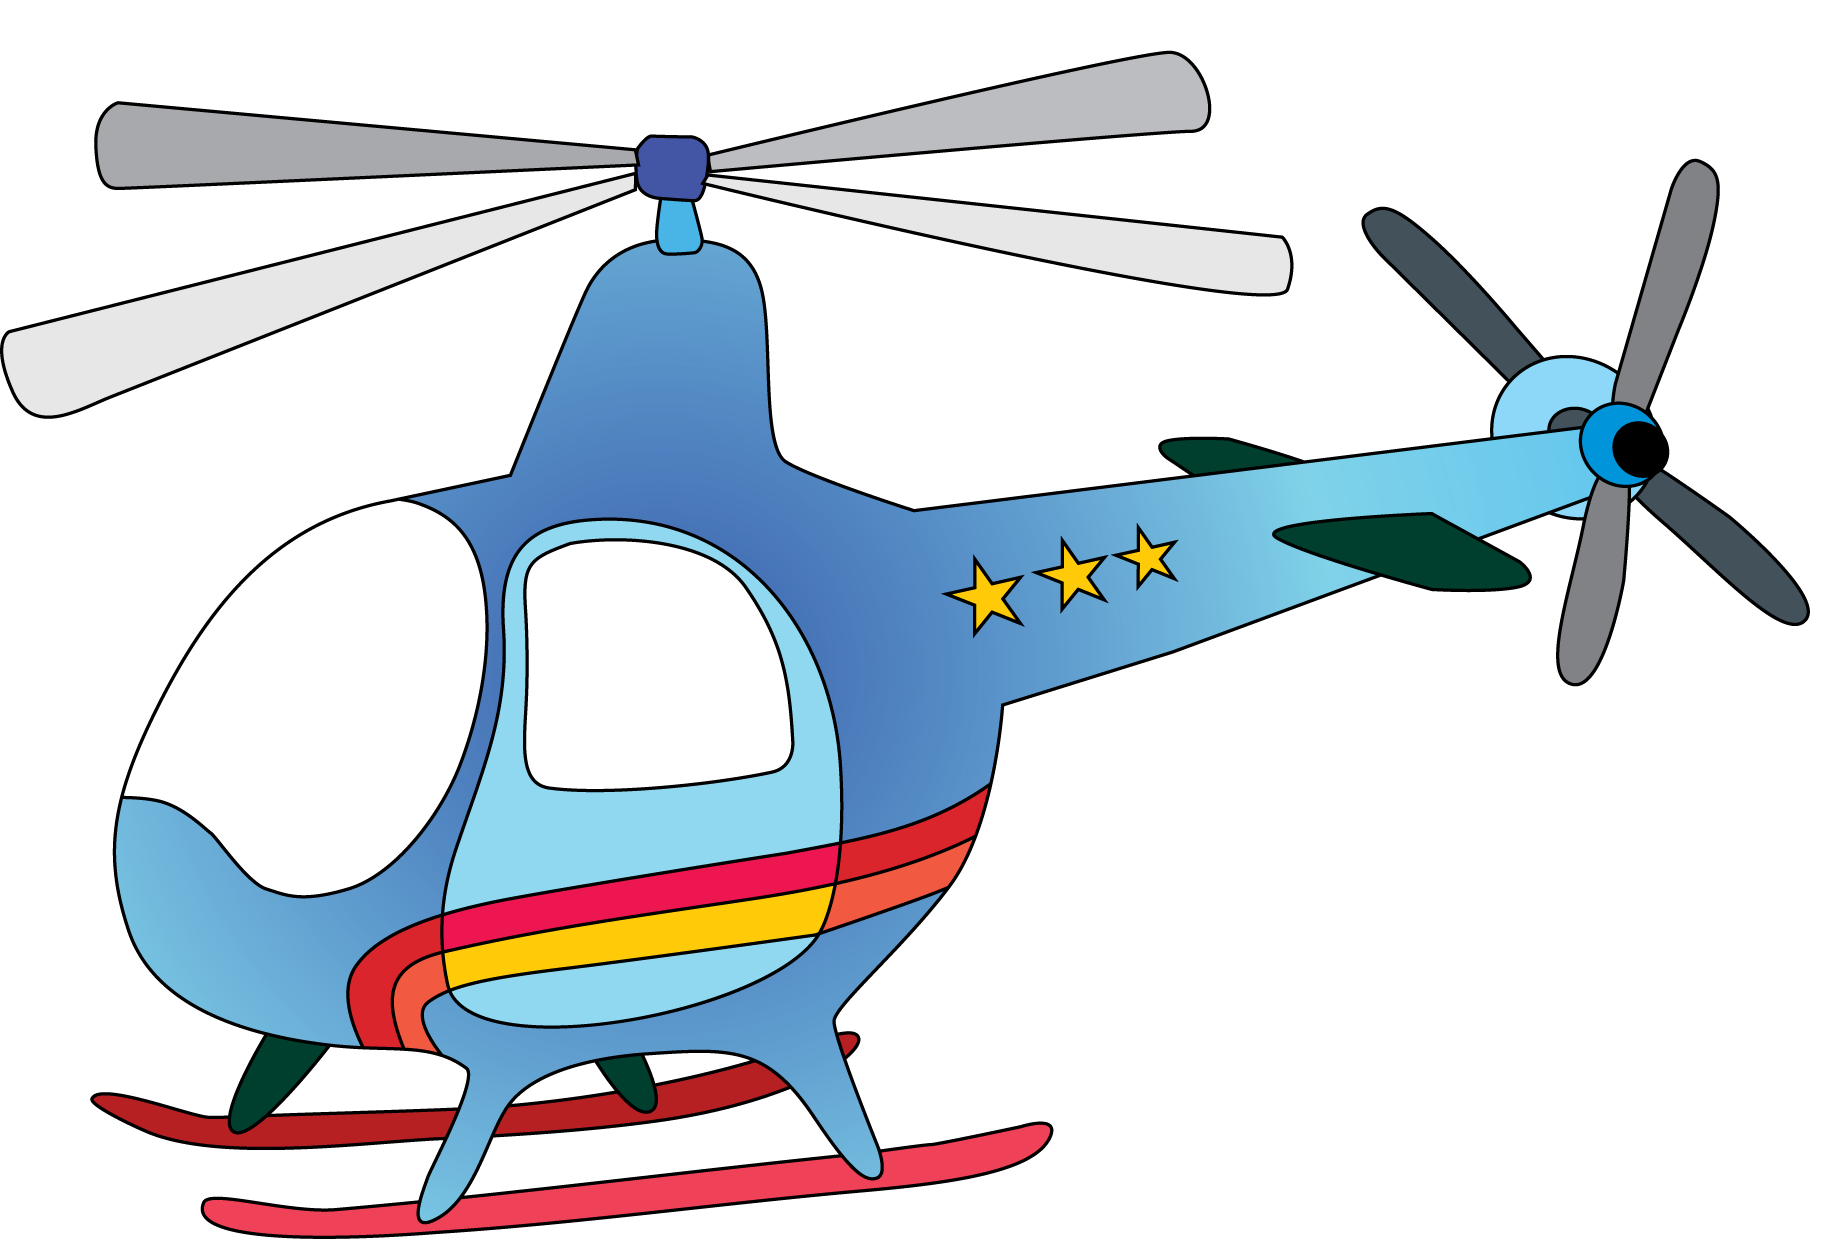 Helicopter panda free images. Drill clipart sounds graphic library stock